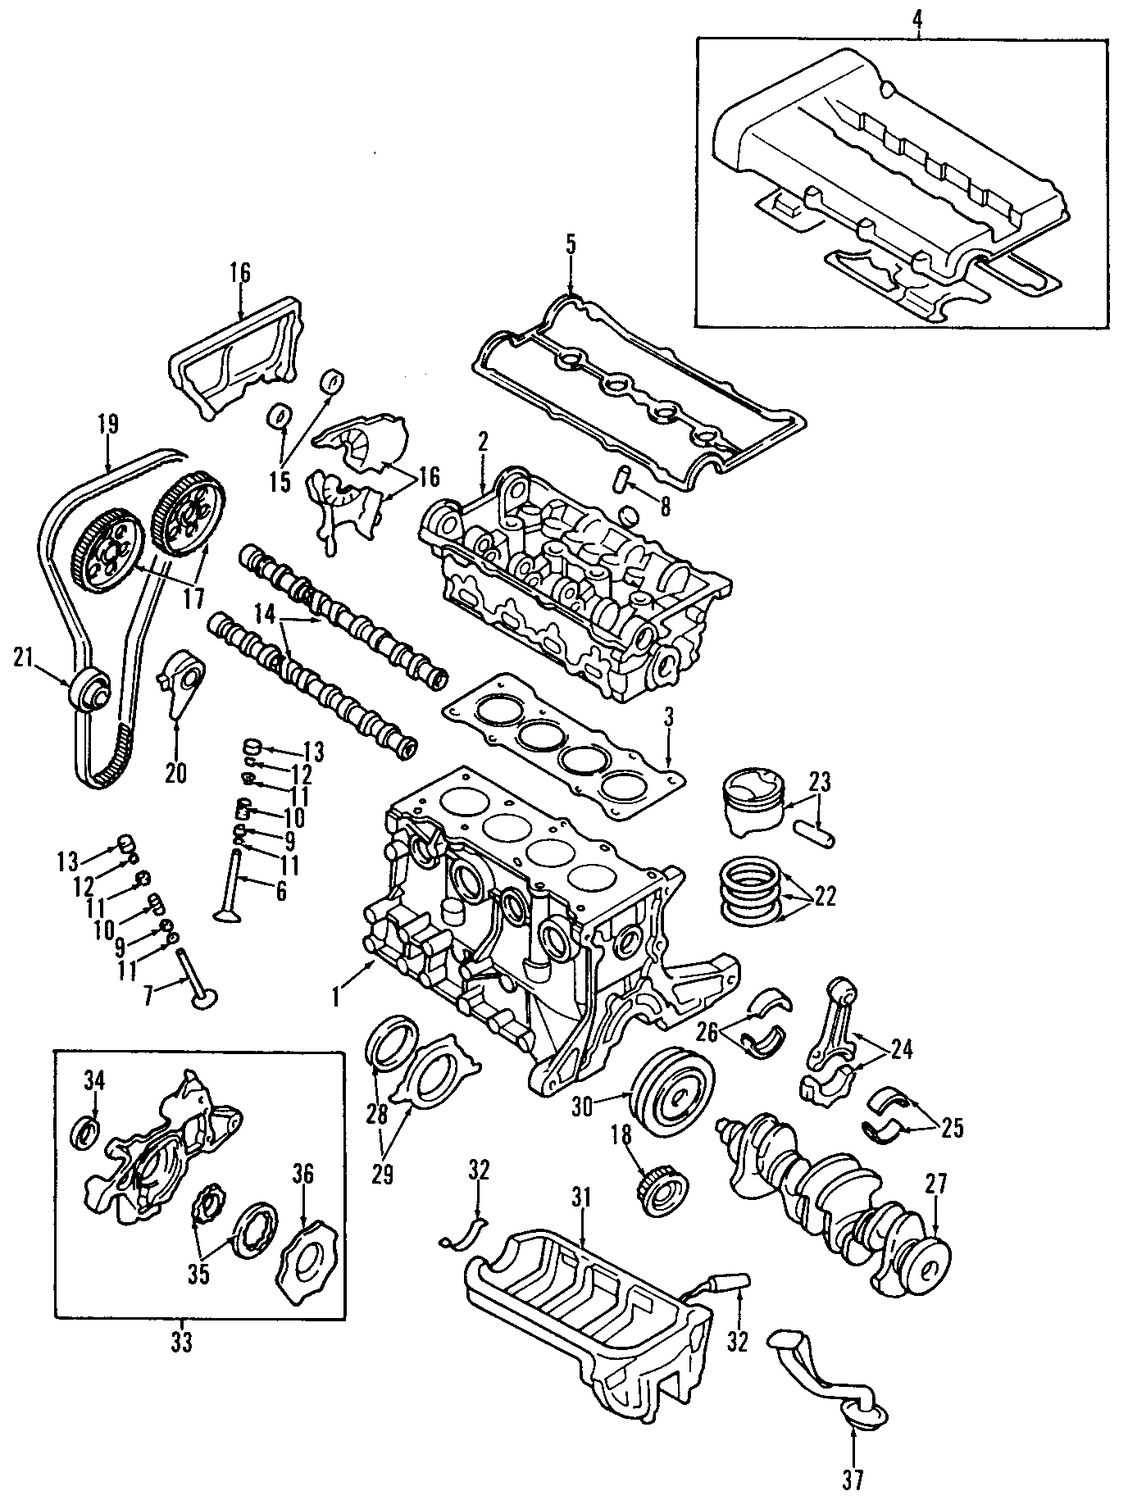 2002 Kia Rio Engine Diagram - top electrical wiring diagram Kia Engine Diagram on 2000 kia sportage motor diagram, kia car diagram, kia rio 1.6 engine, kia wiring diagram, kia rondo engine problems, kia 2.4 engine, kia axle diagram, kia 4 wheel drive problems, kia serpentine belt diagram, 2006 kia rio belt diagram, 2005 kia sedona firing order diagram, kia parts diagram, kia sedona starter diagram, 2000 kia sportage timing marks diagram, kia steering diagram, kia engine specs, toro groundsmaster 120 wire diagram, 2005 kia sedona exhaust system diagram, kia 3.5 engine problems,